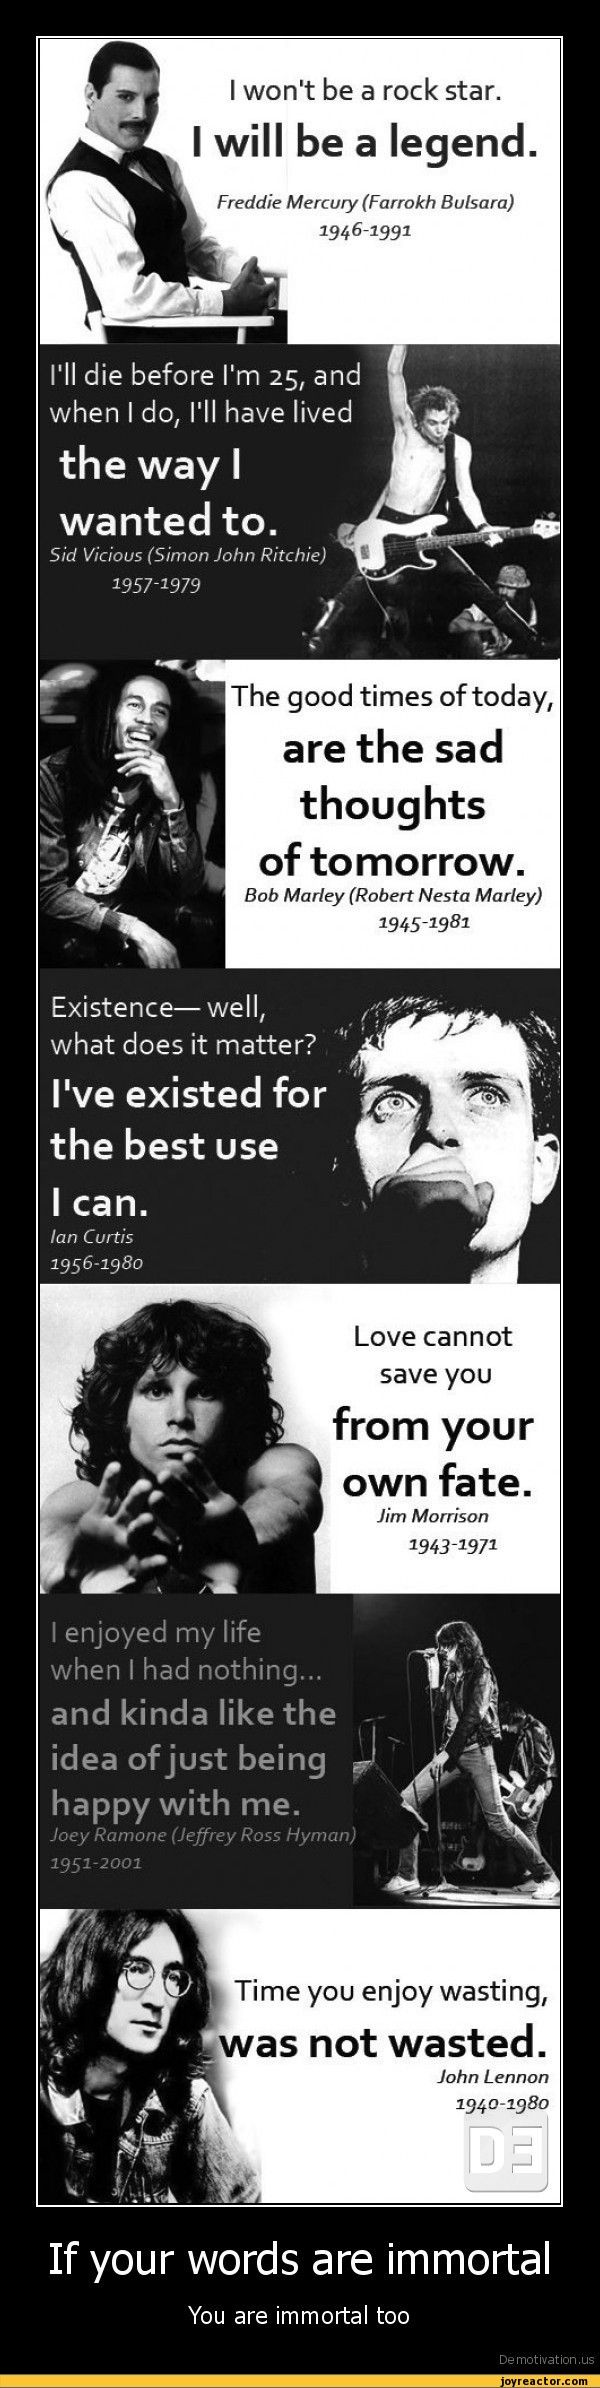 Inspiration from rock and roll legends